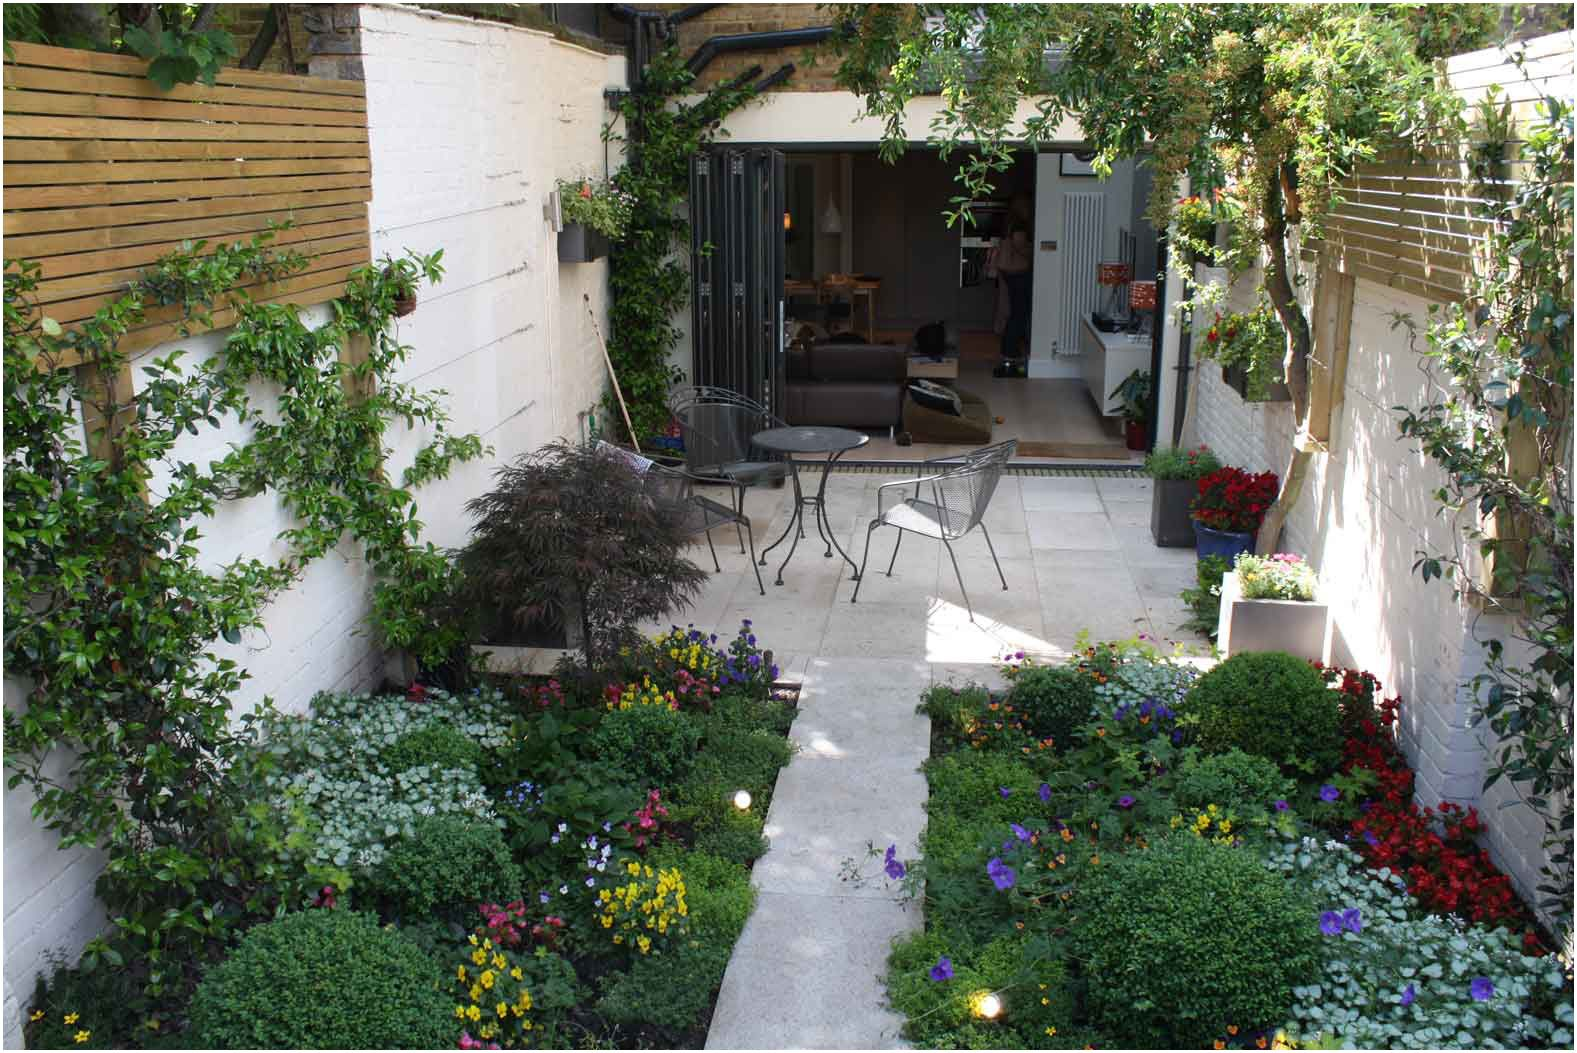 garden design london east sussex uk jo thompson landscape in england bountifulb 1 - Courtyard Garden Ideas Uk